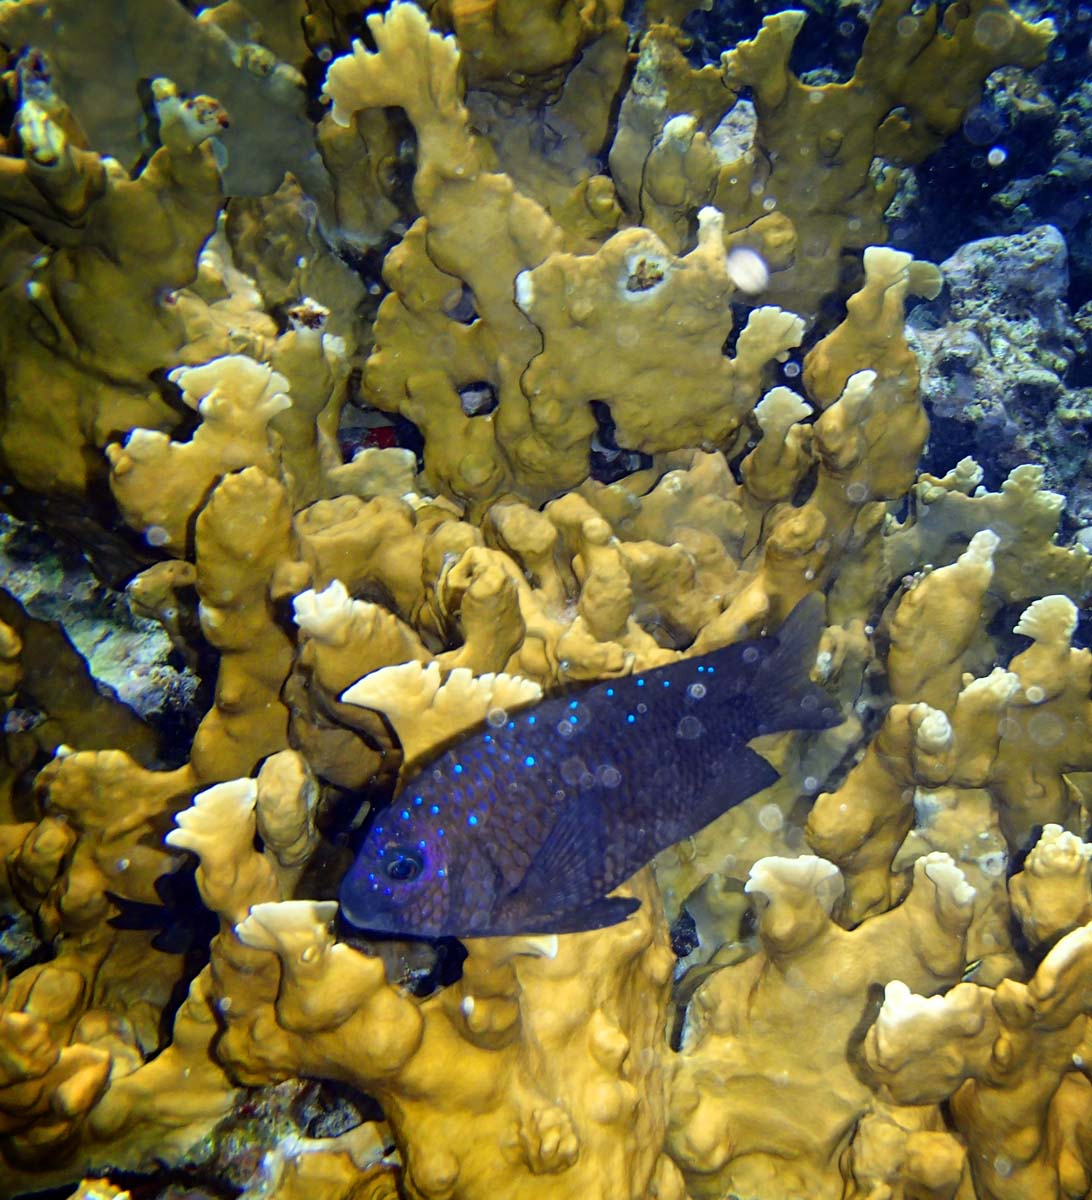 I shot this image a fish with very deep blue color against yellow coral with the flash turned on. Though I liked that it brought out the colors, I'm not a fan of the shadows the flash created. (Robert K. Hamilton/Baltimore Sun)